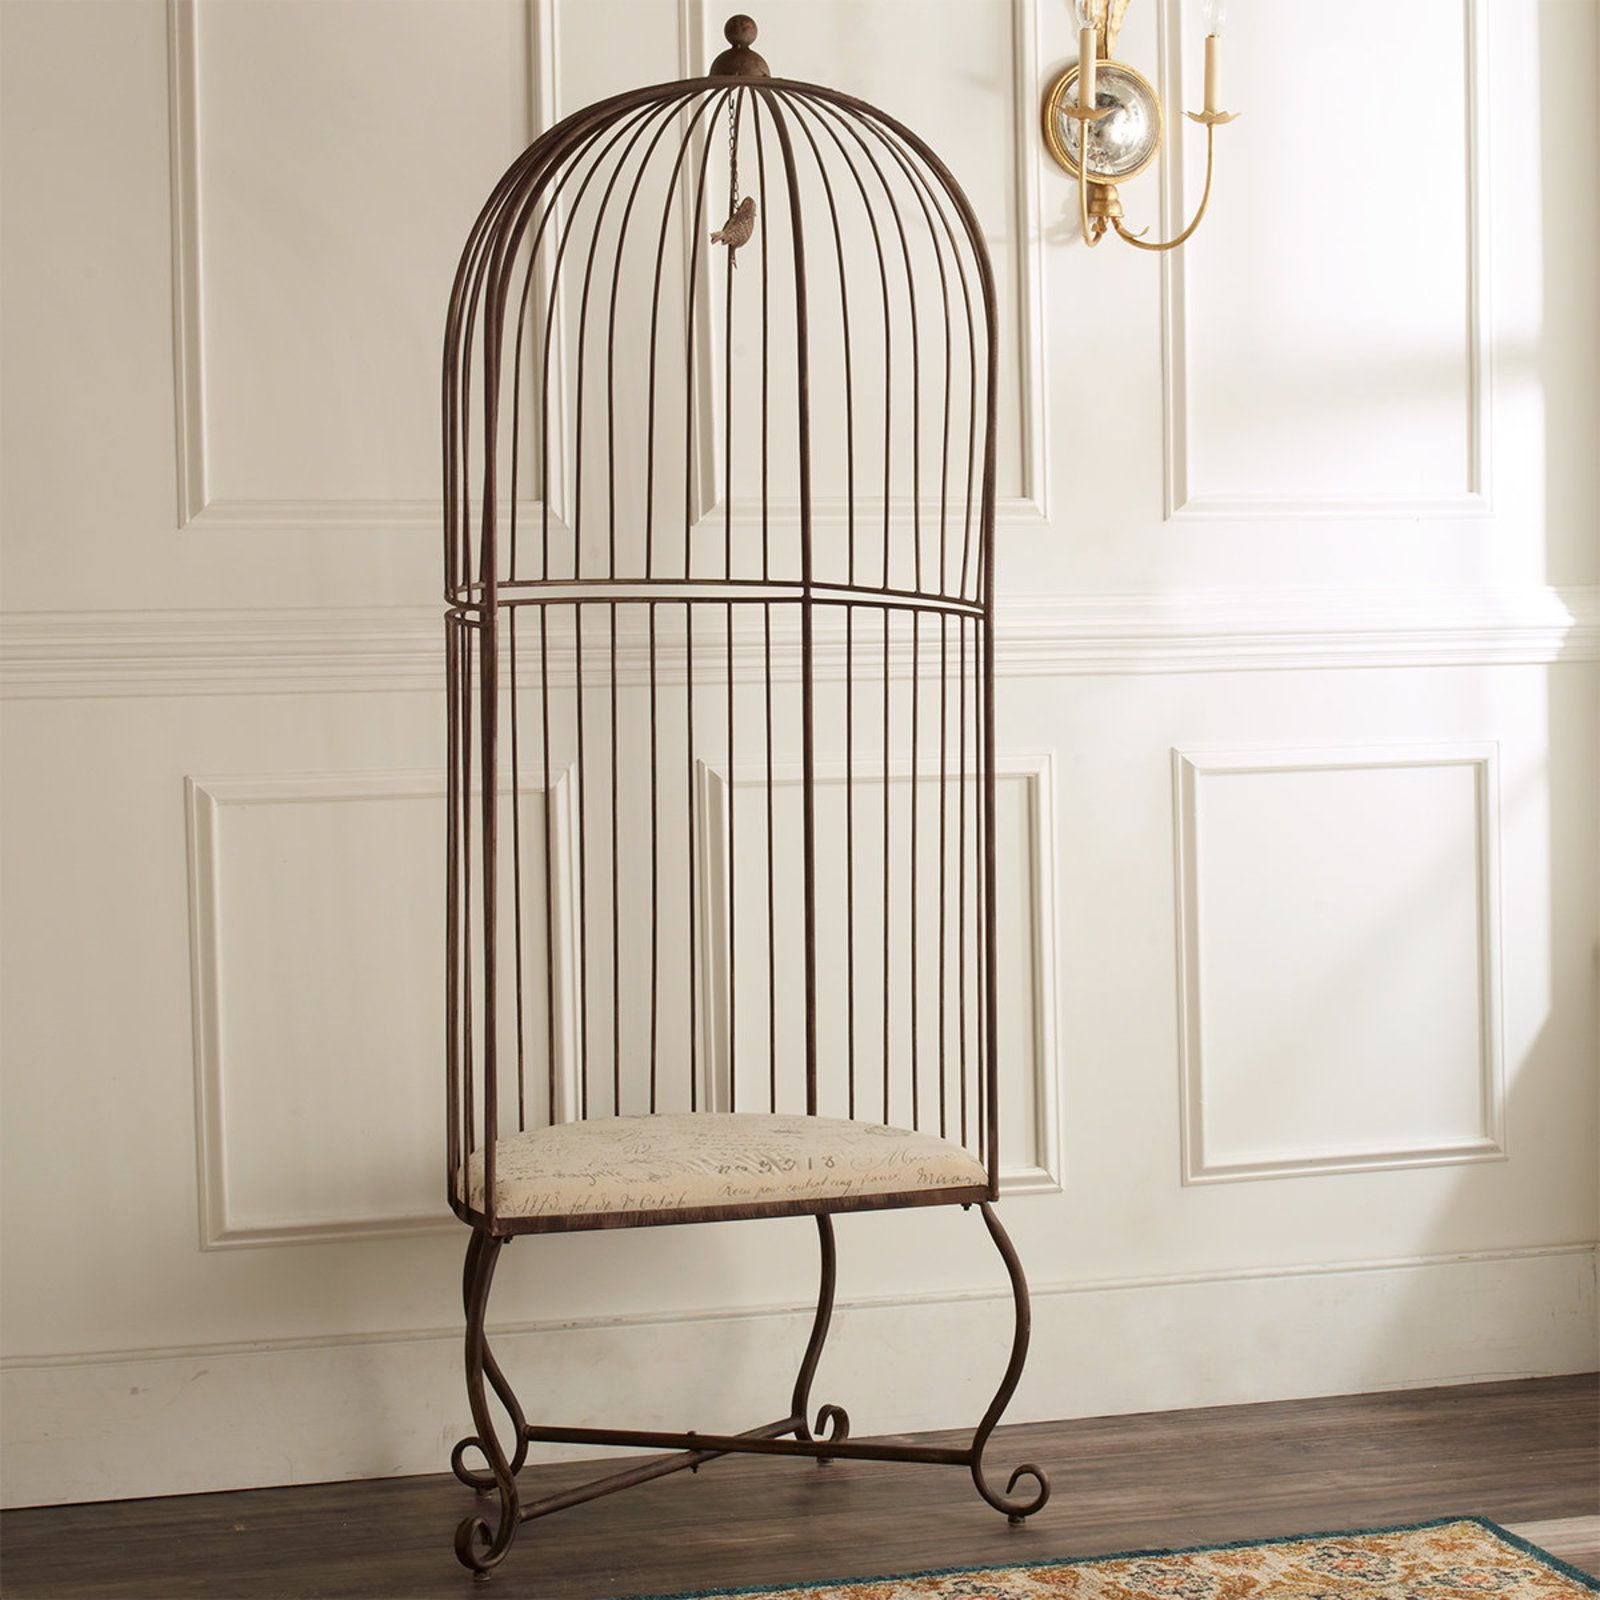 Accent Chair With Cage Bottom: Birdcage Accent Chair Iron